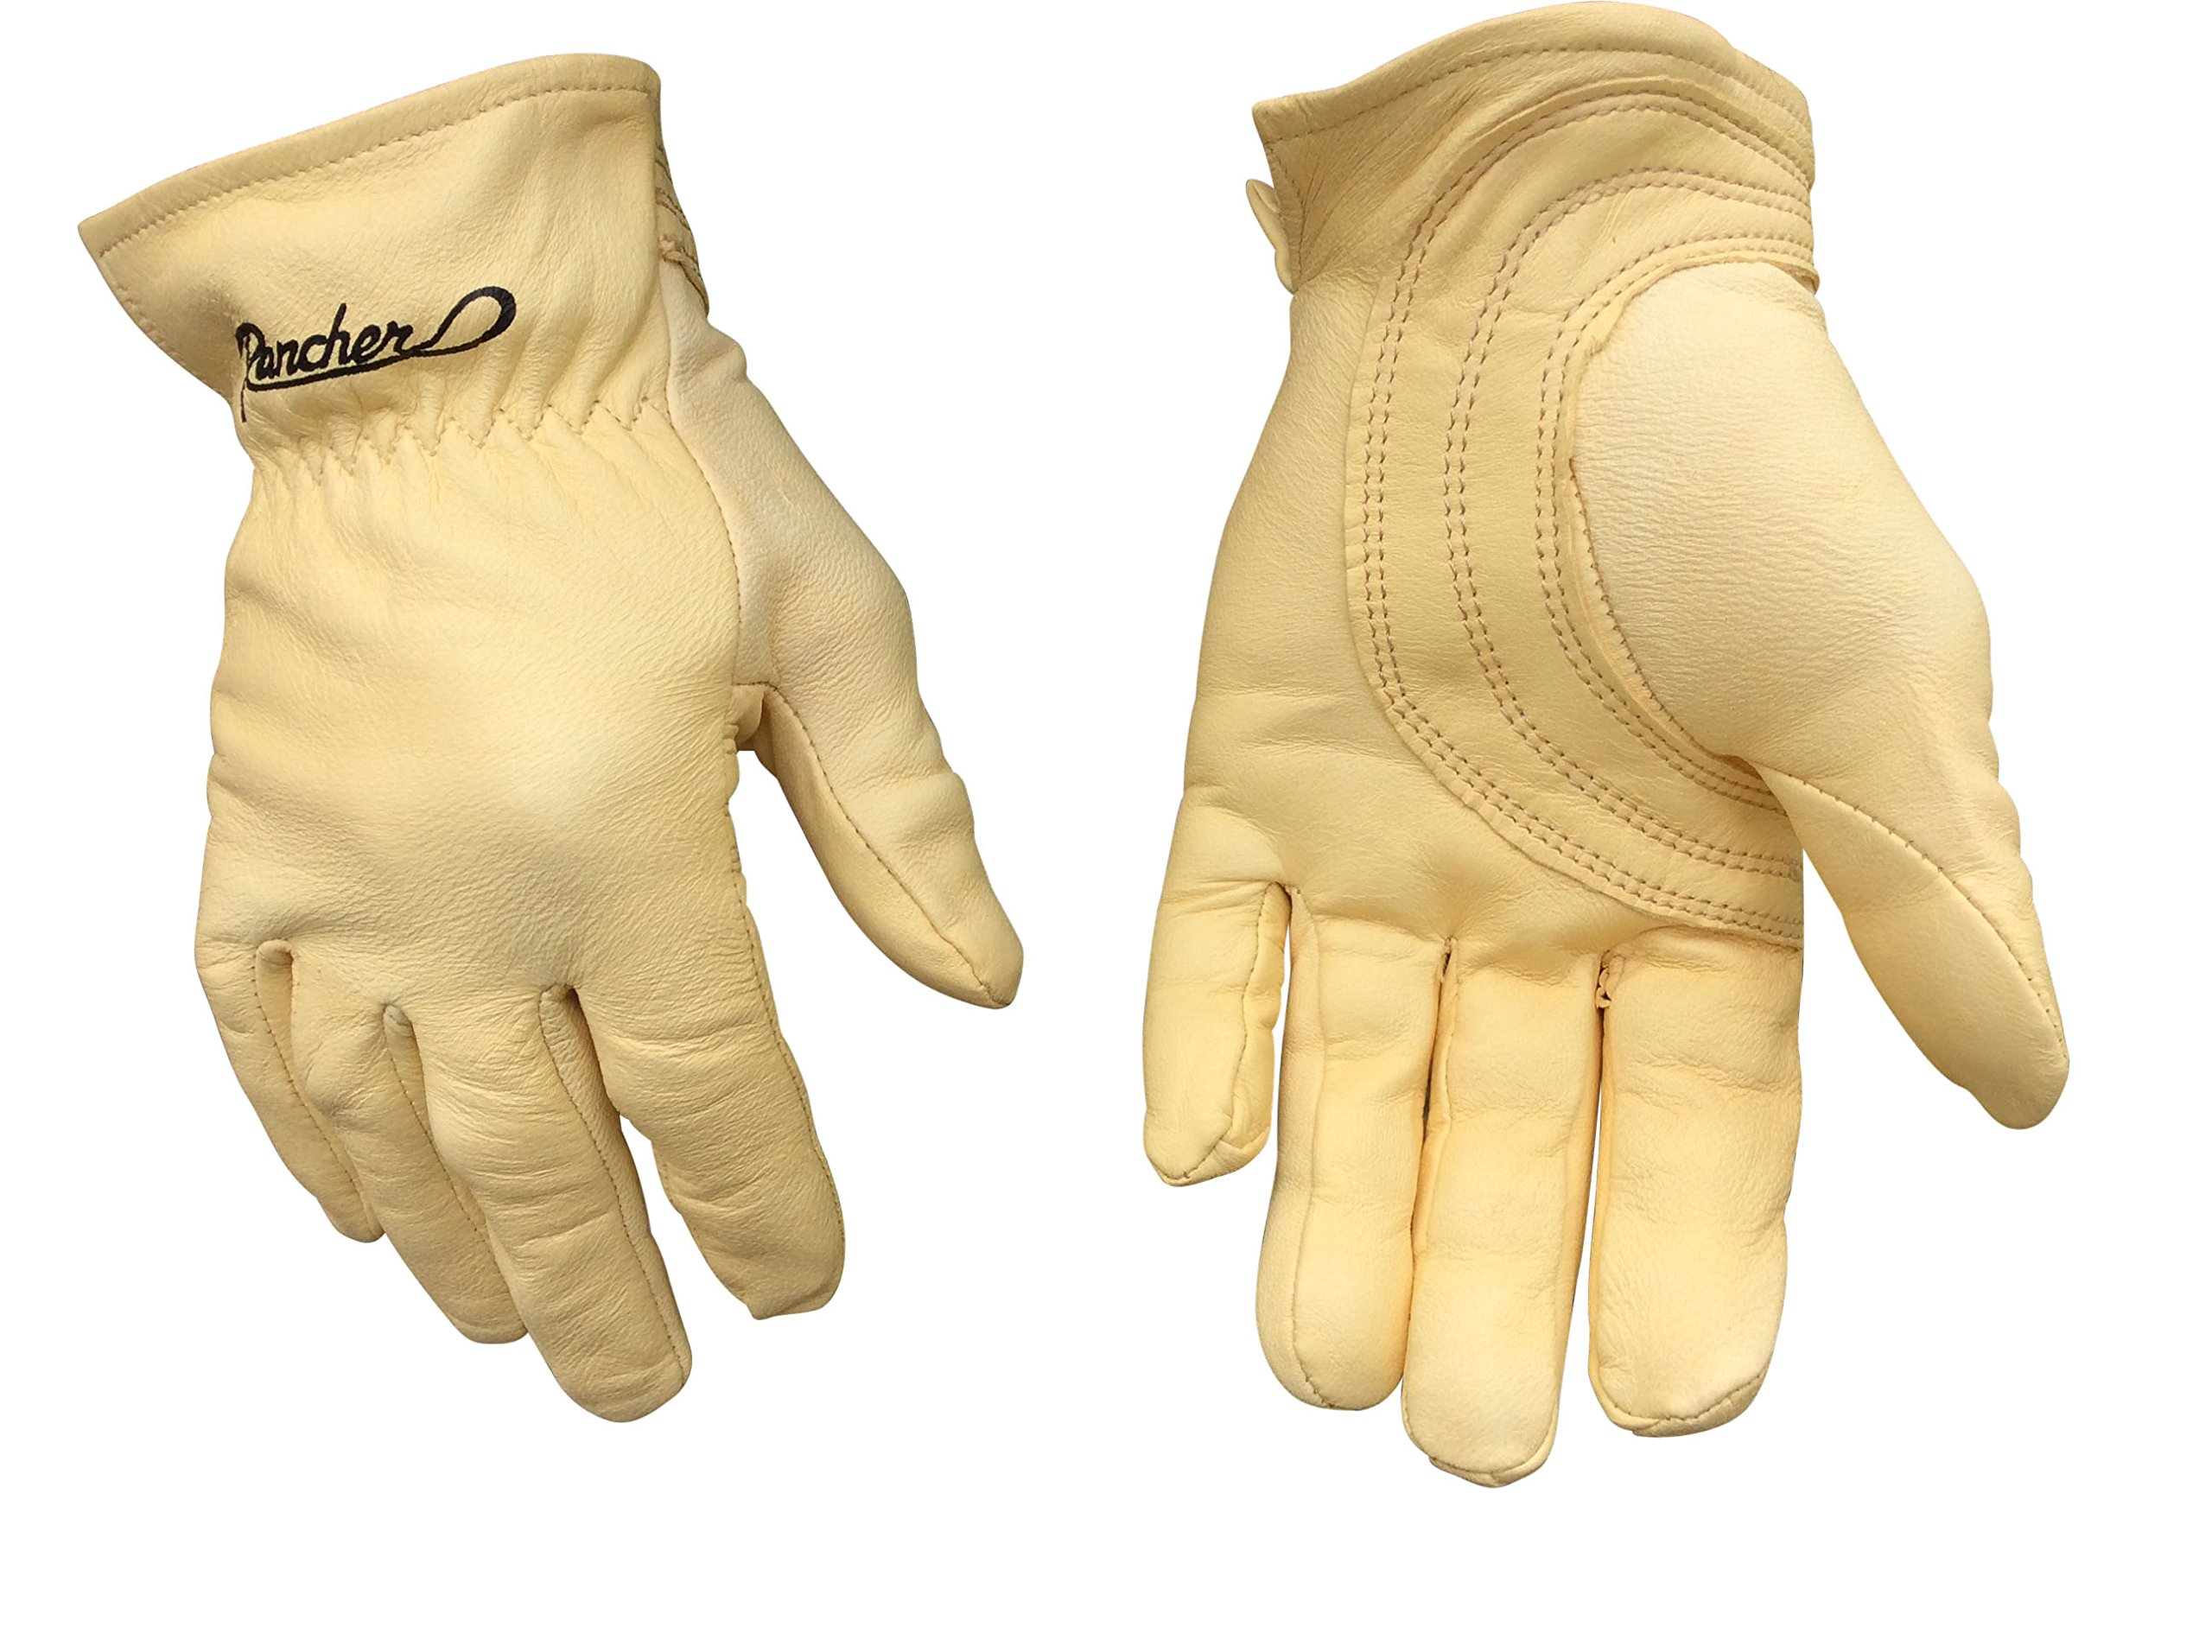 Goatskin leather work gloves - Product Overview